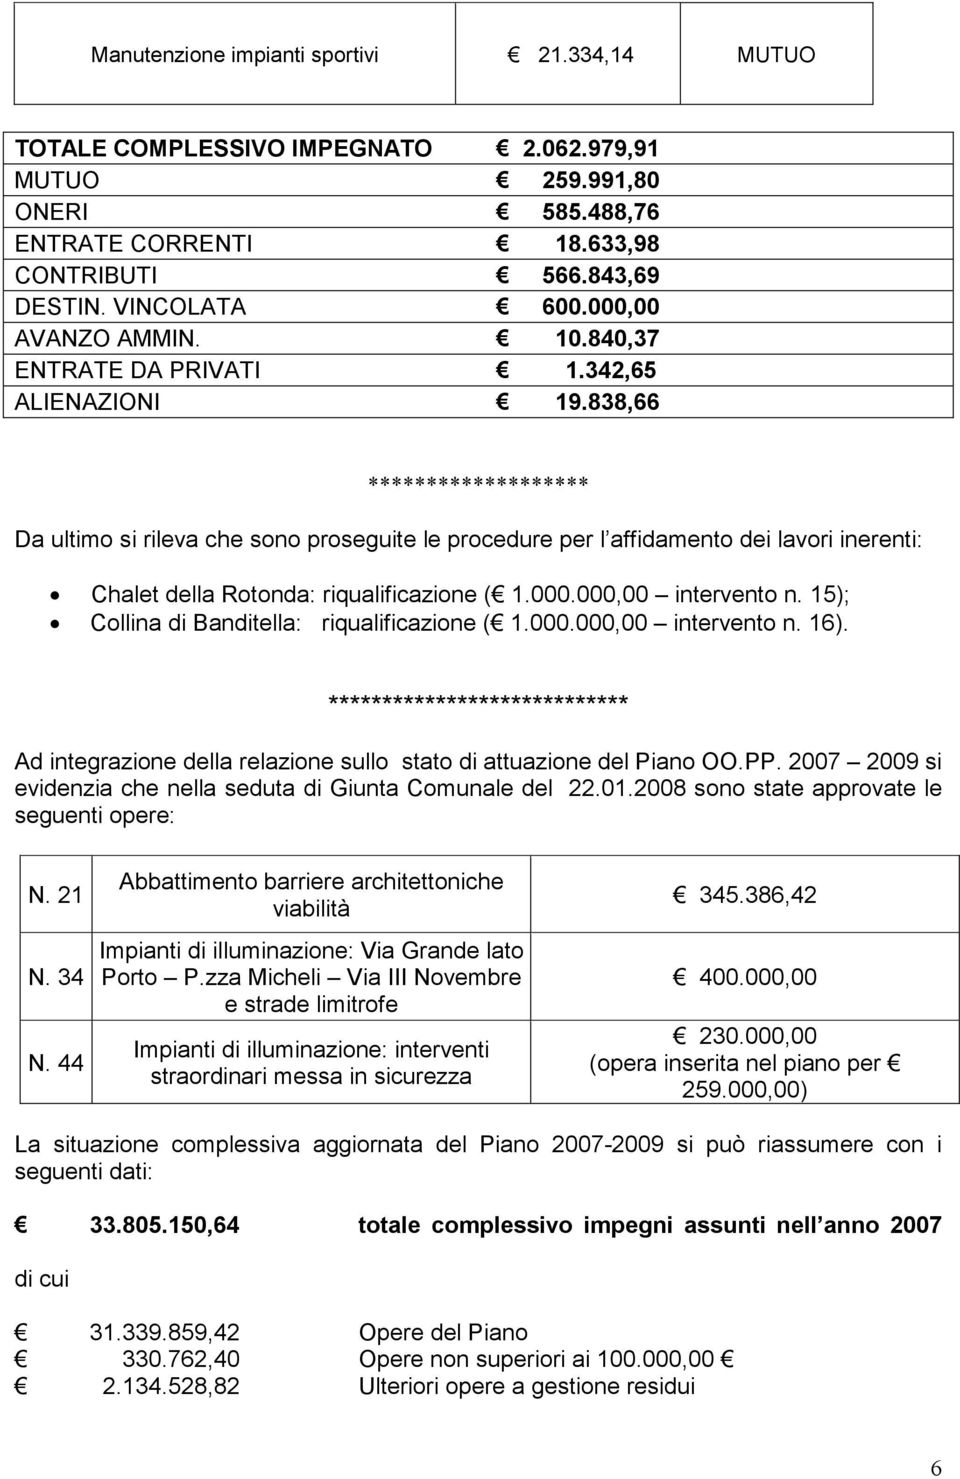 000.000,00 intervento n. 15); Collina di Banditella: riqualificazione ( 1.000.000,00 intervento n. 16).